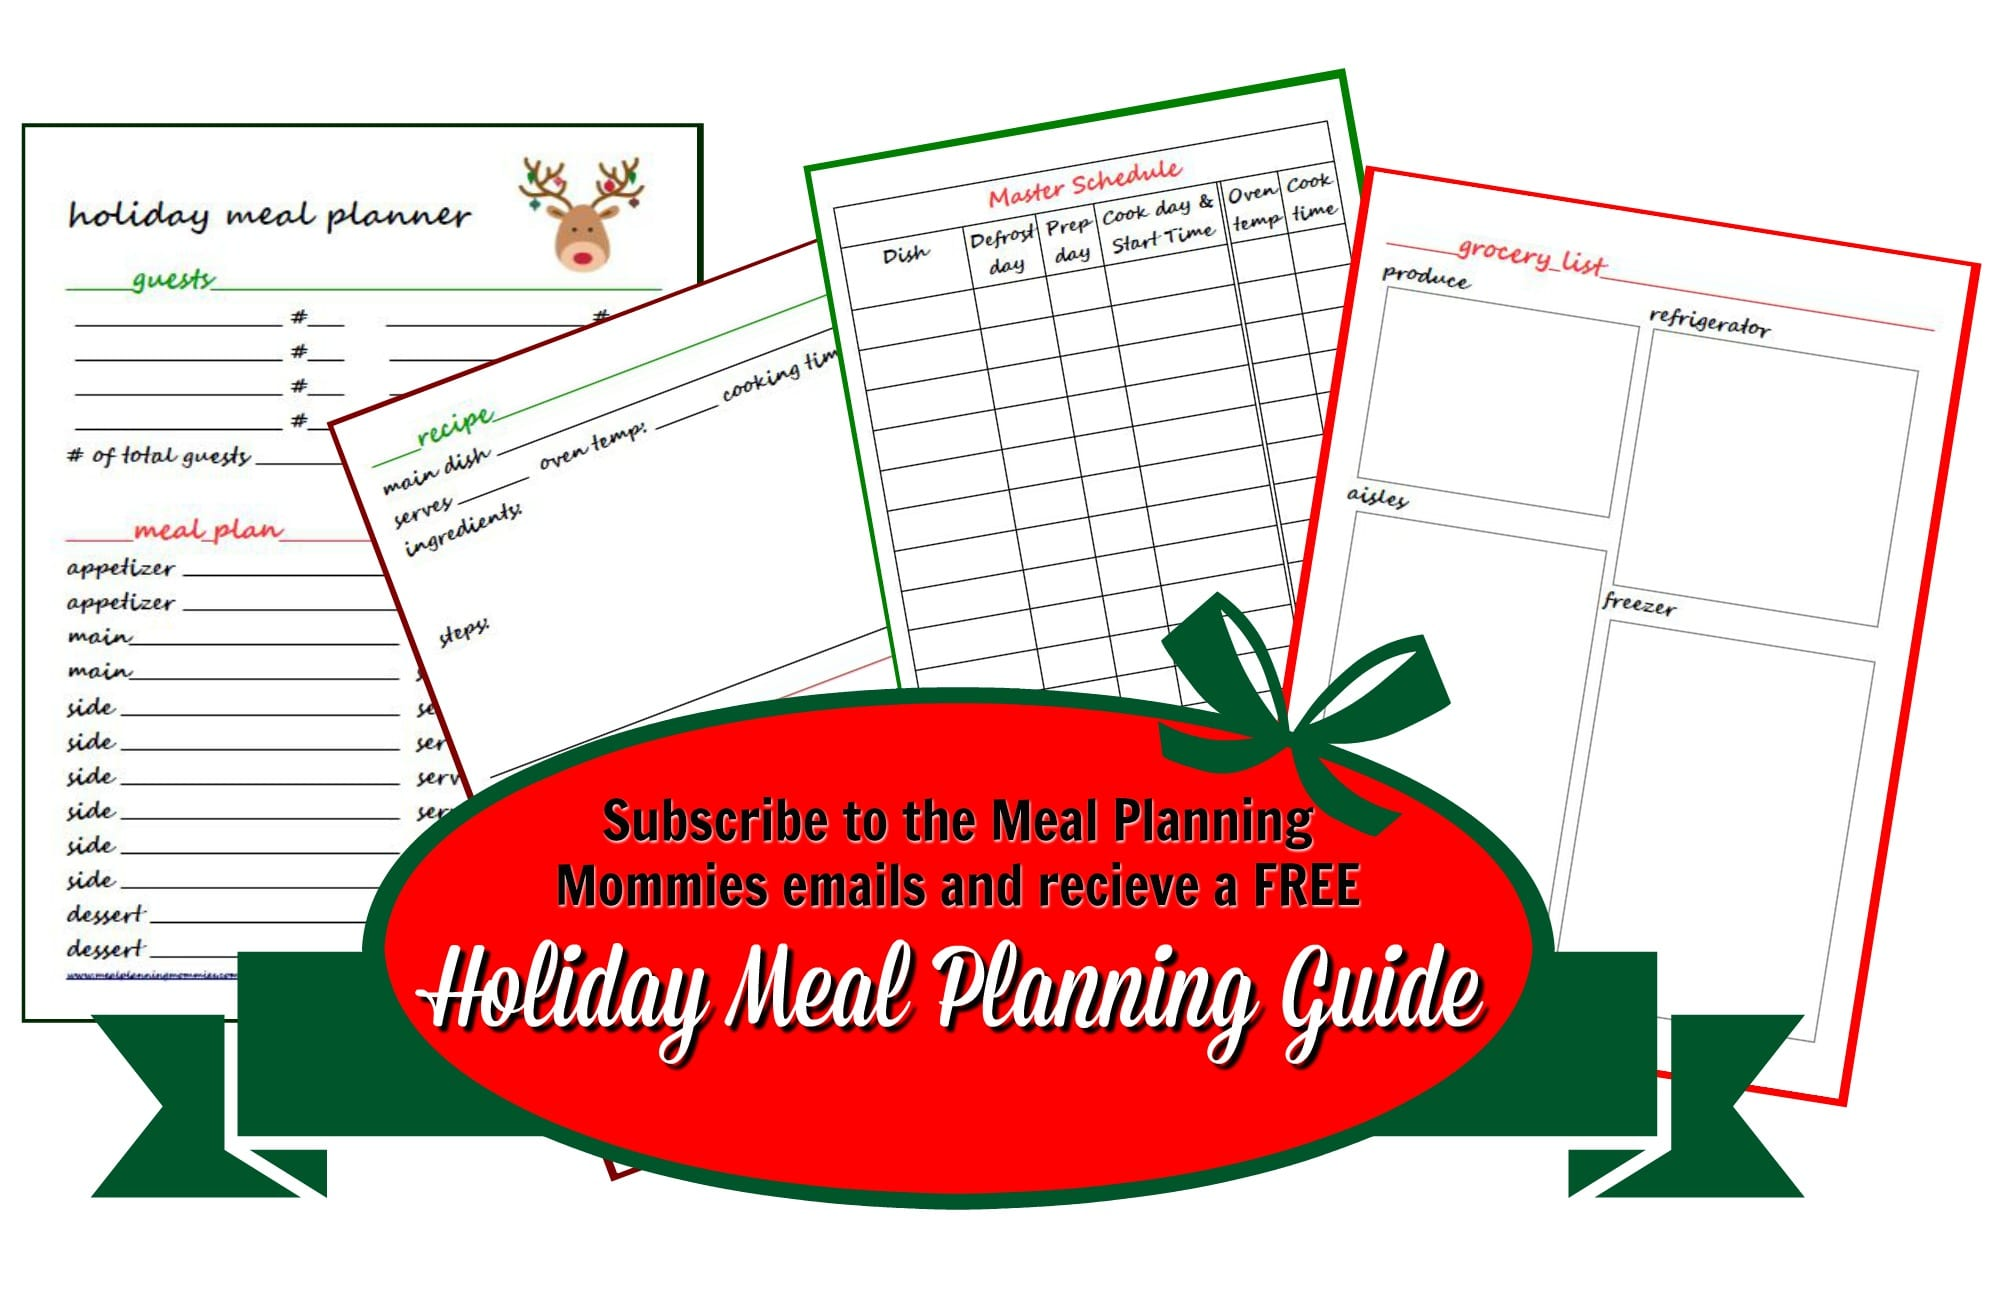 subscribe-to-the-mpm-emails-and-get-a-free-holiday-meal-planning-guide